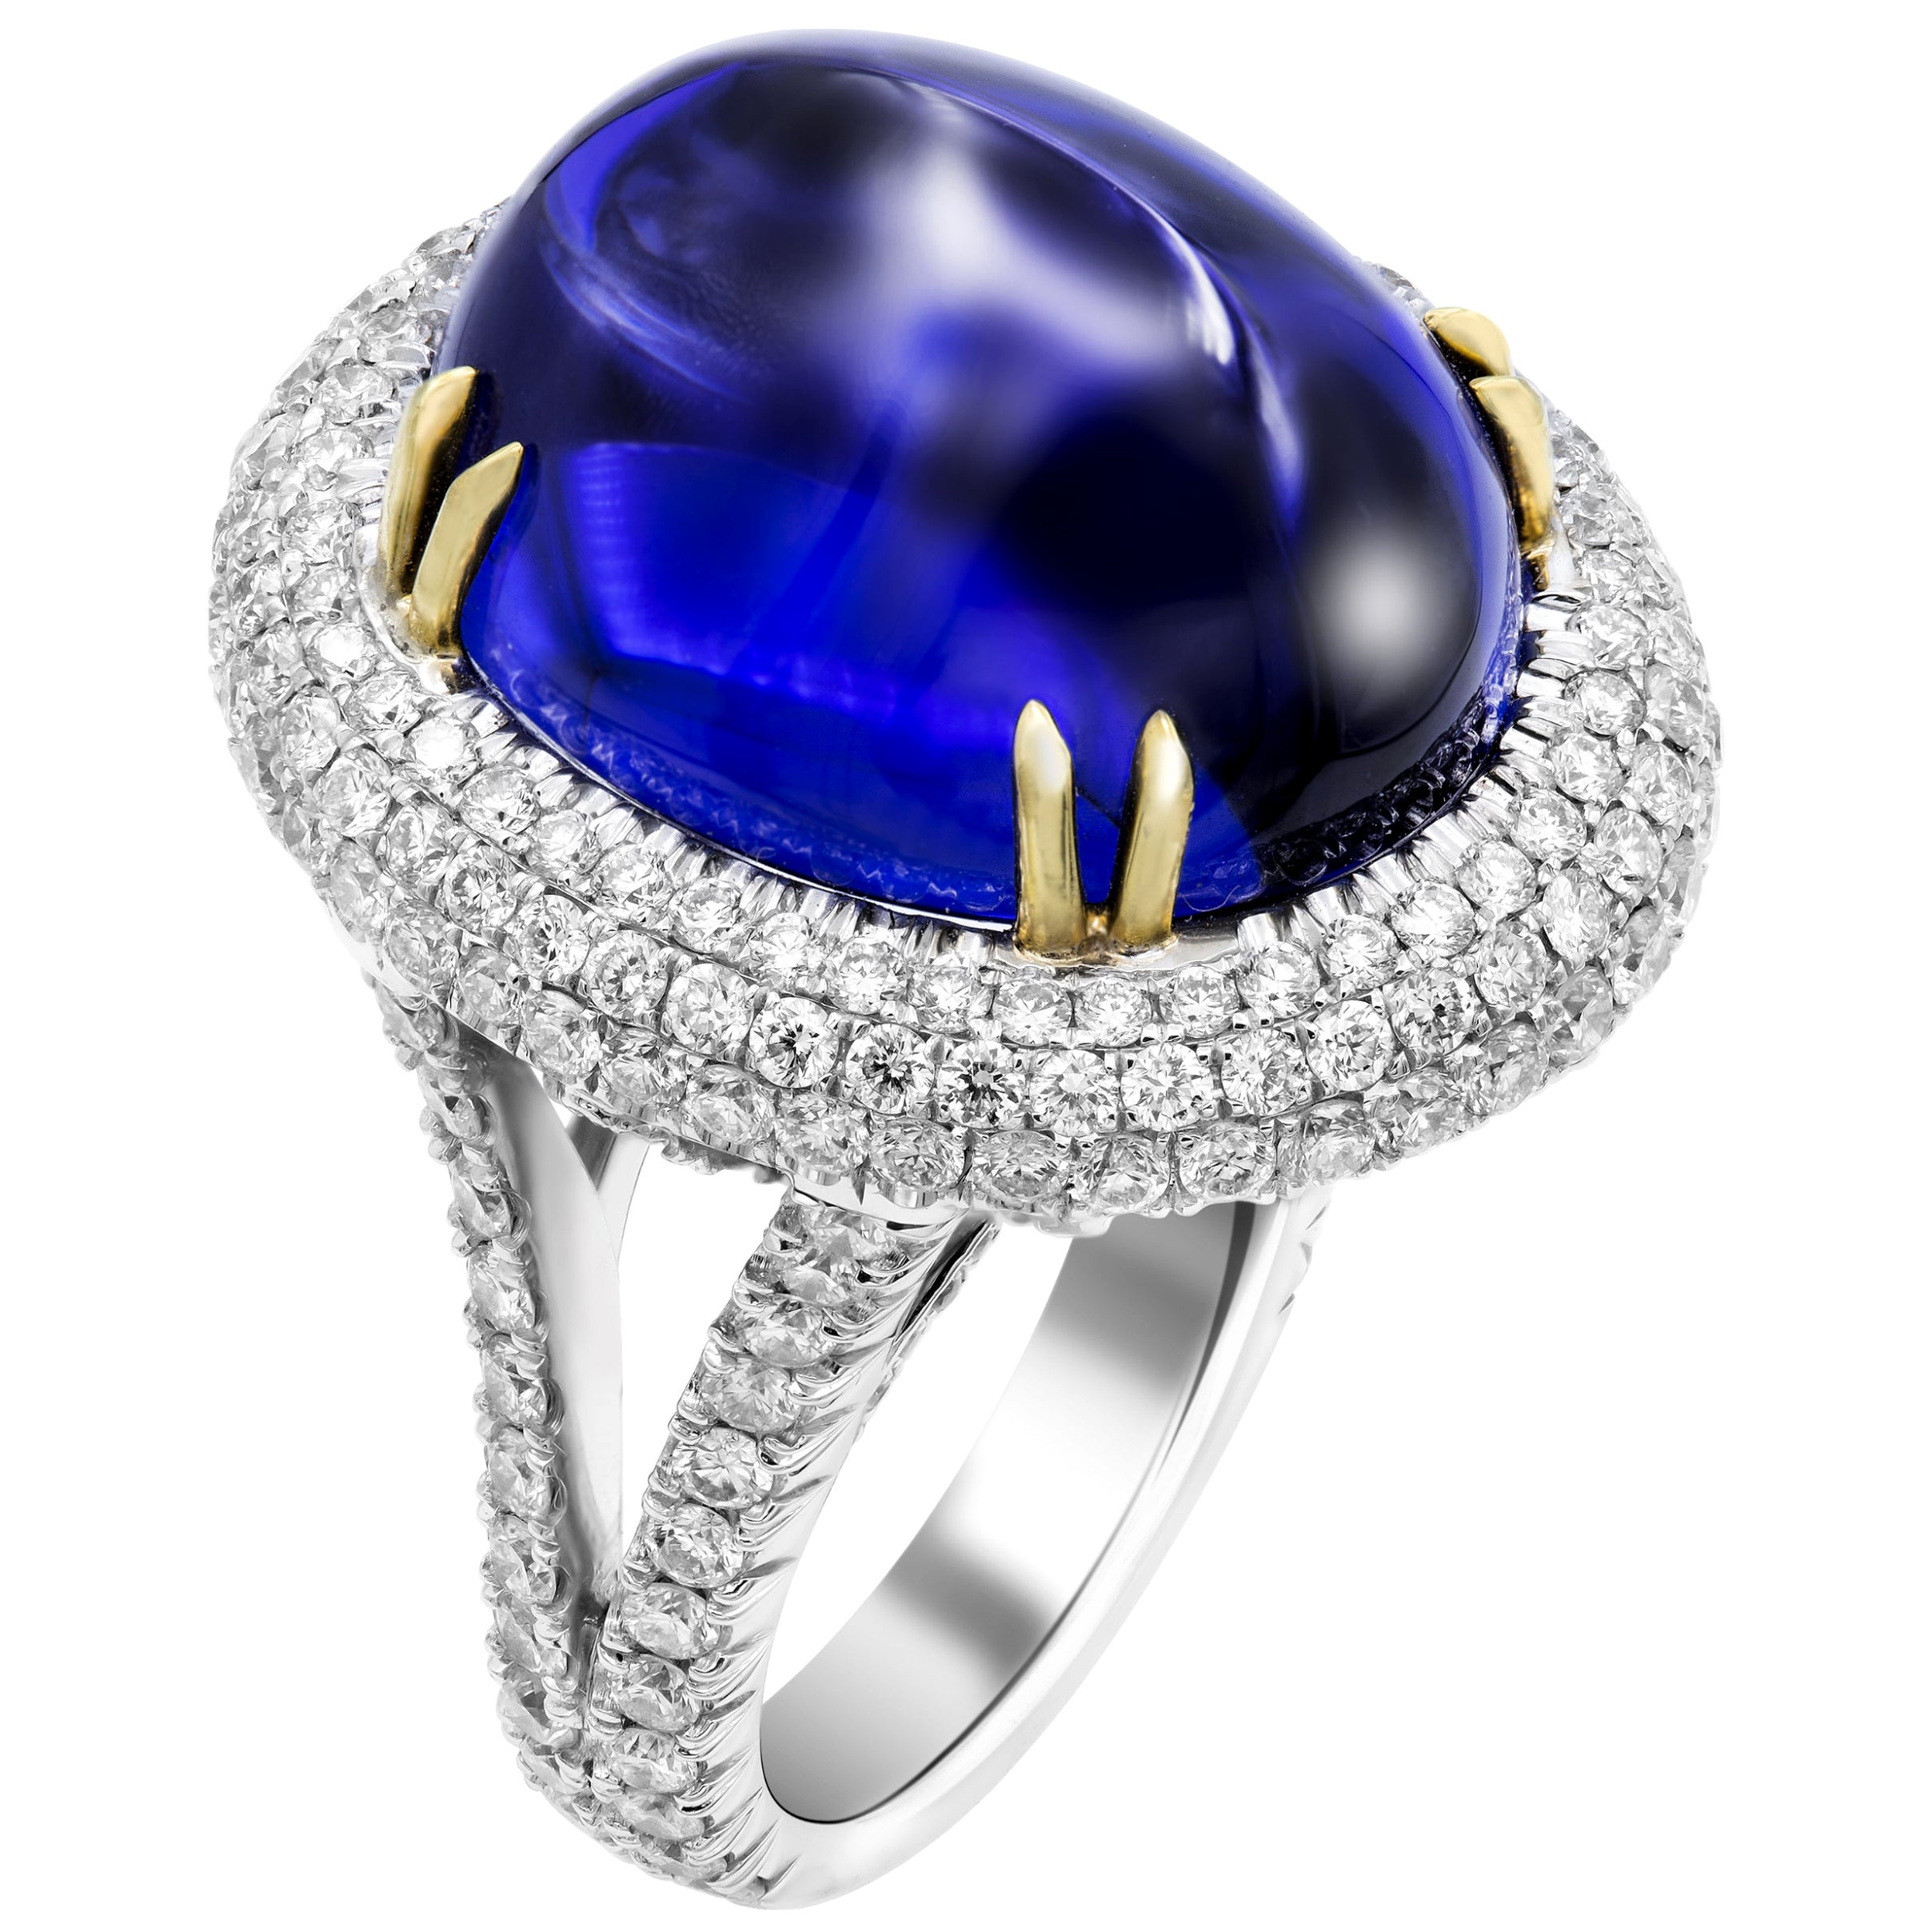 GIA Certified 26.37 Carat Oval Tanzanite Cabochon Diamond Cocktail Ring